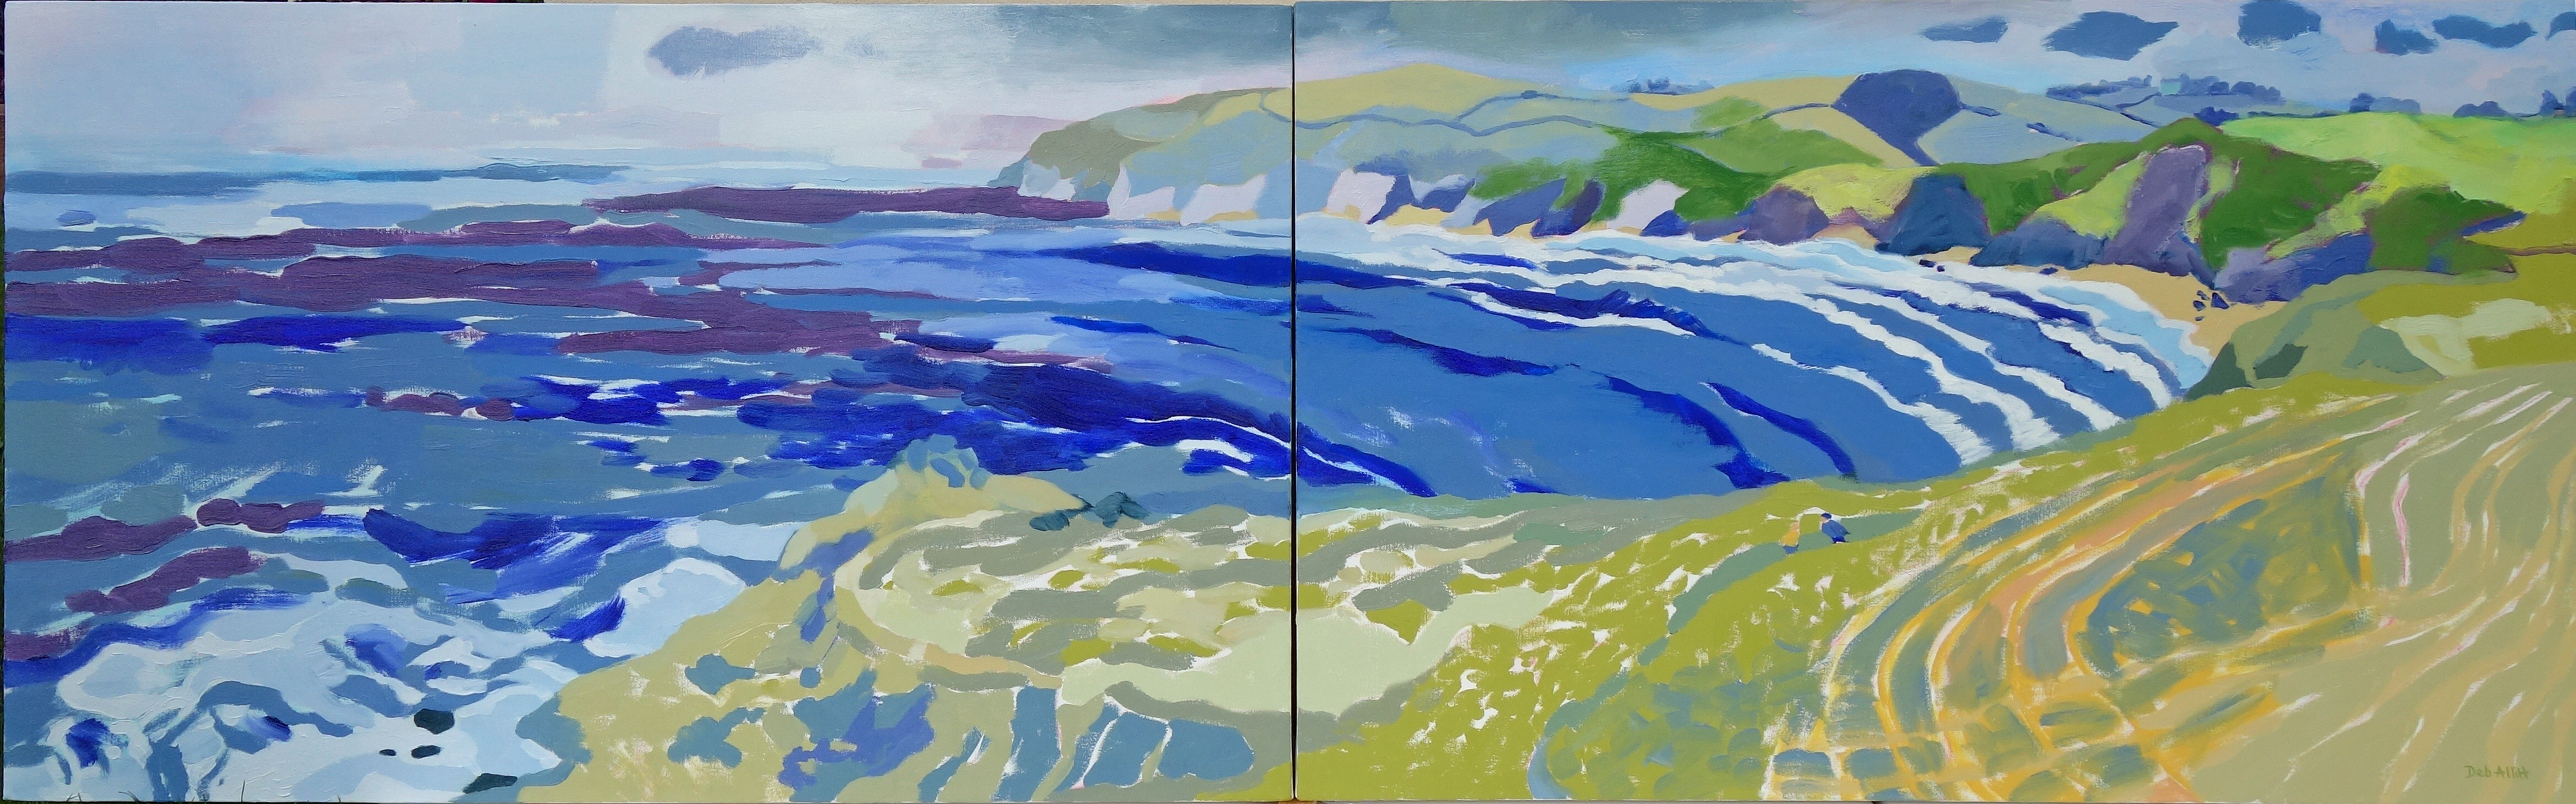 St Anthony Head. Oil on canvas. 60 x 194 cm. (Sold)